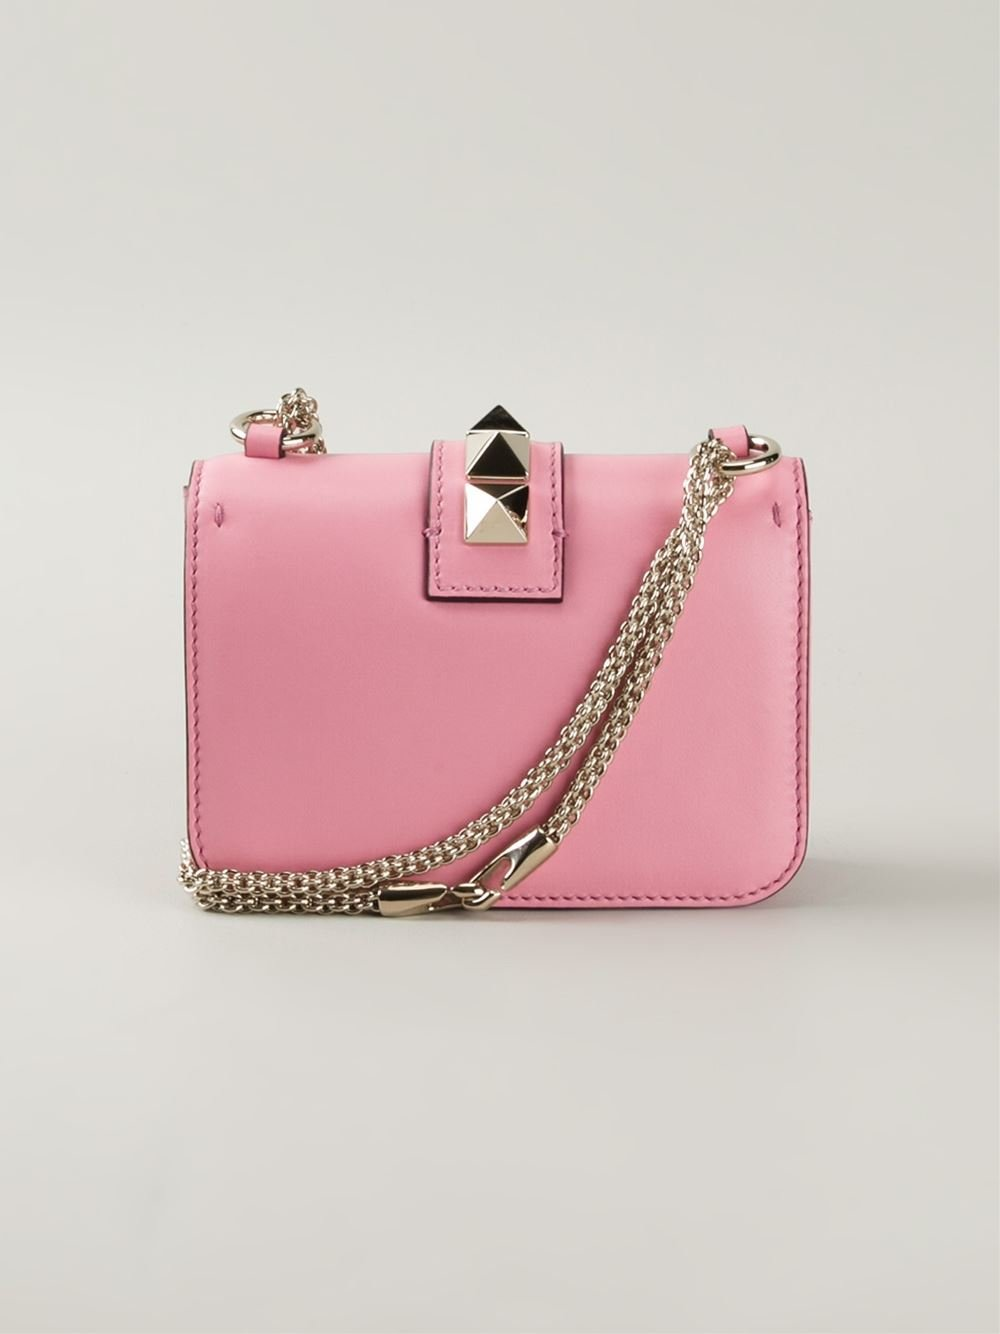 iphone text ringtone lyst valentino glam lock cross bag in pink 5862